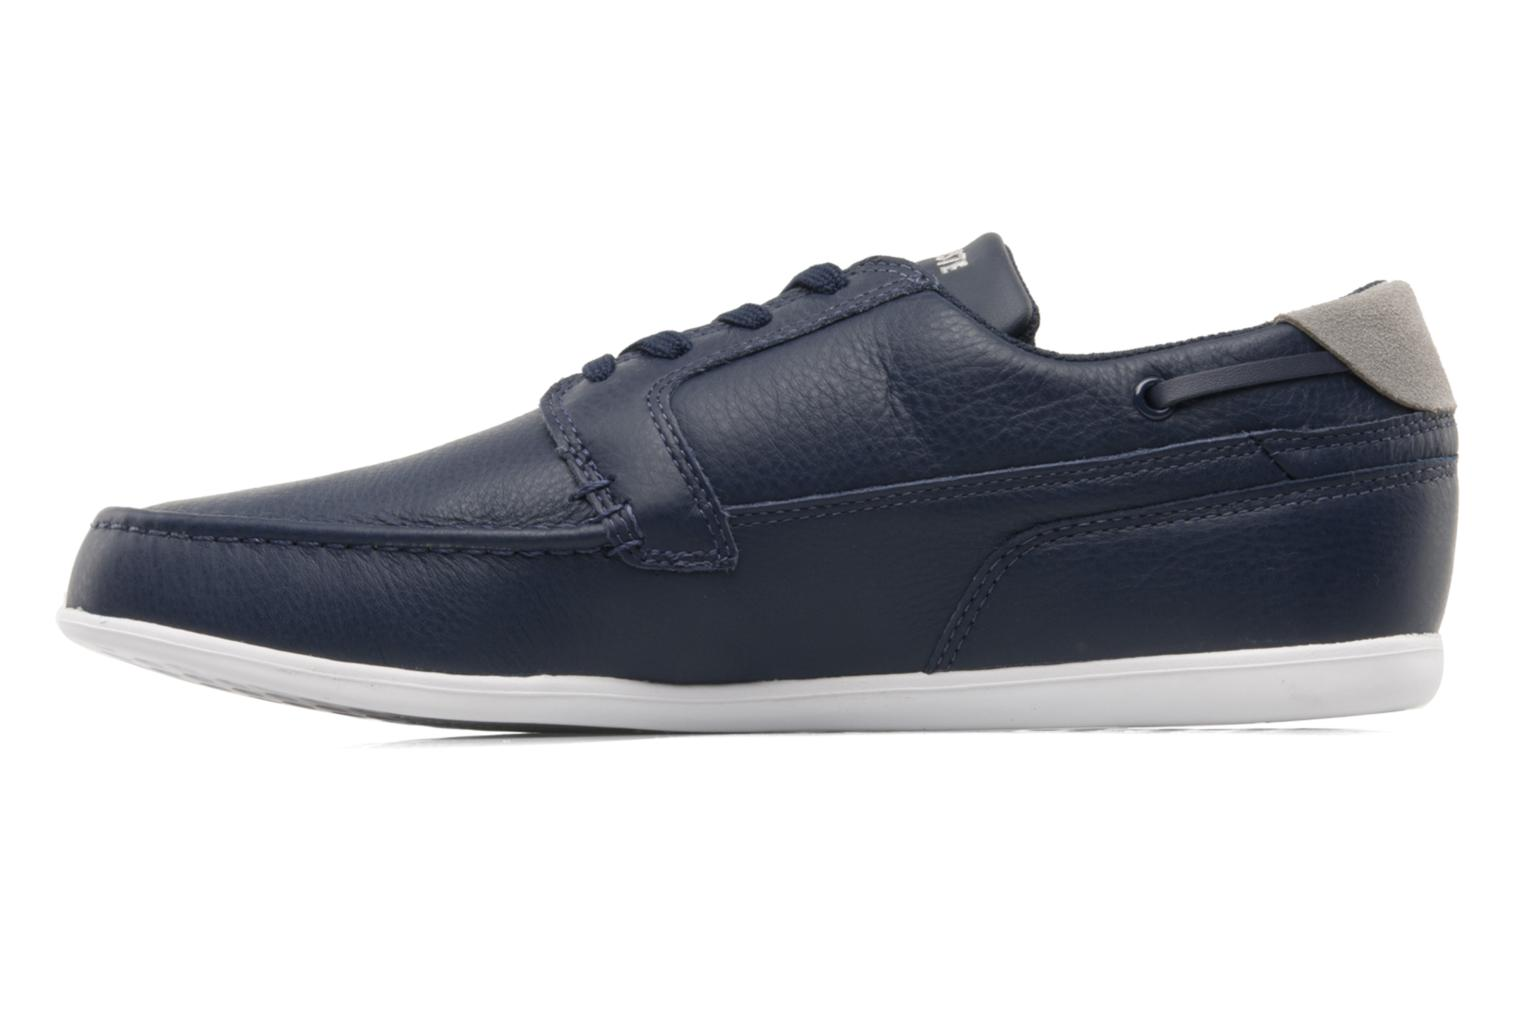 Dreyfus Mb Dark Blue-Grey